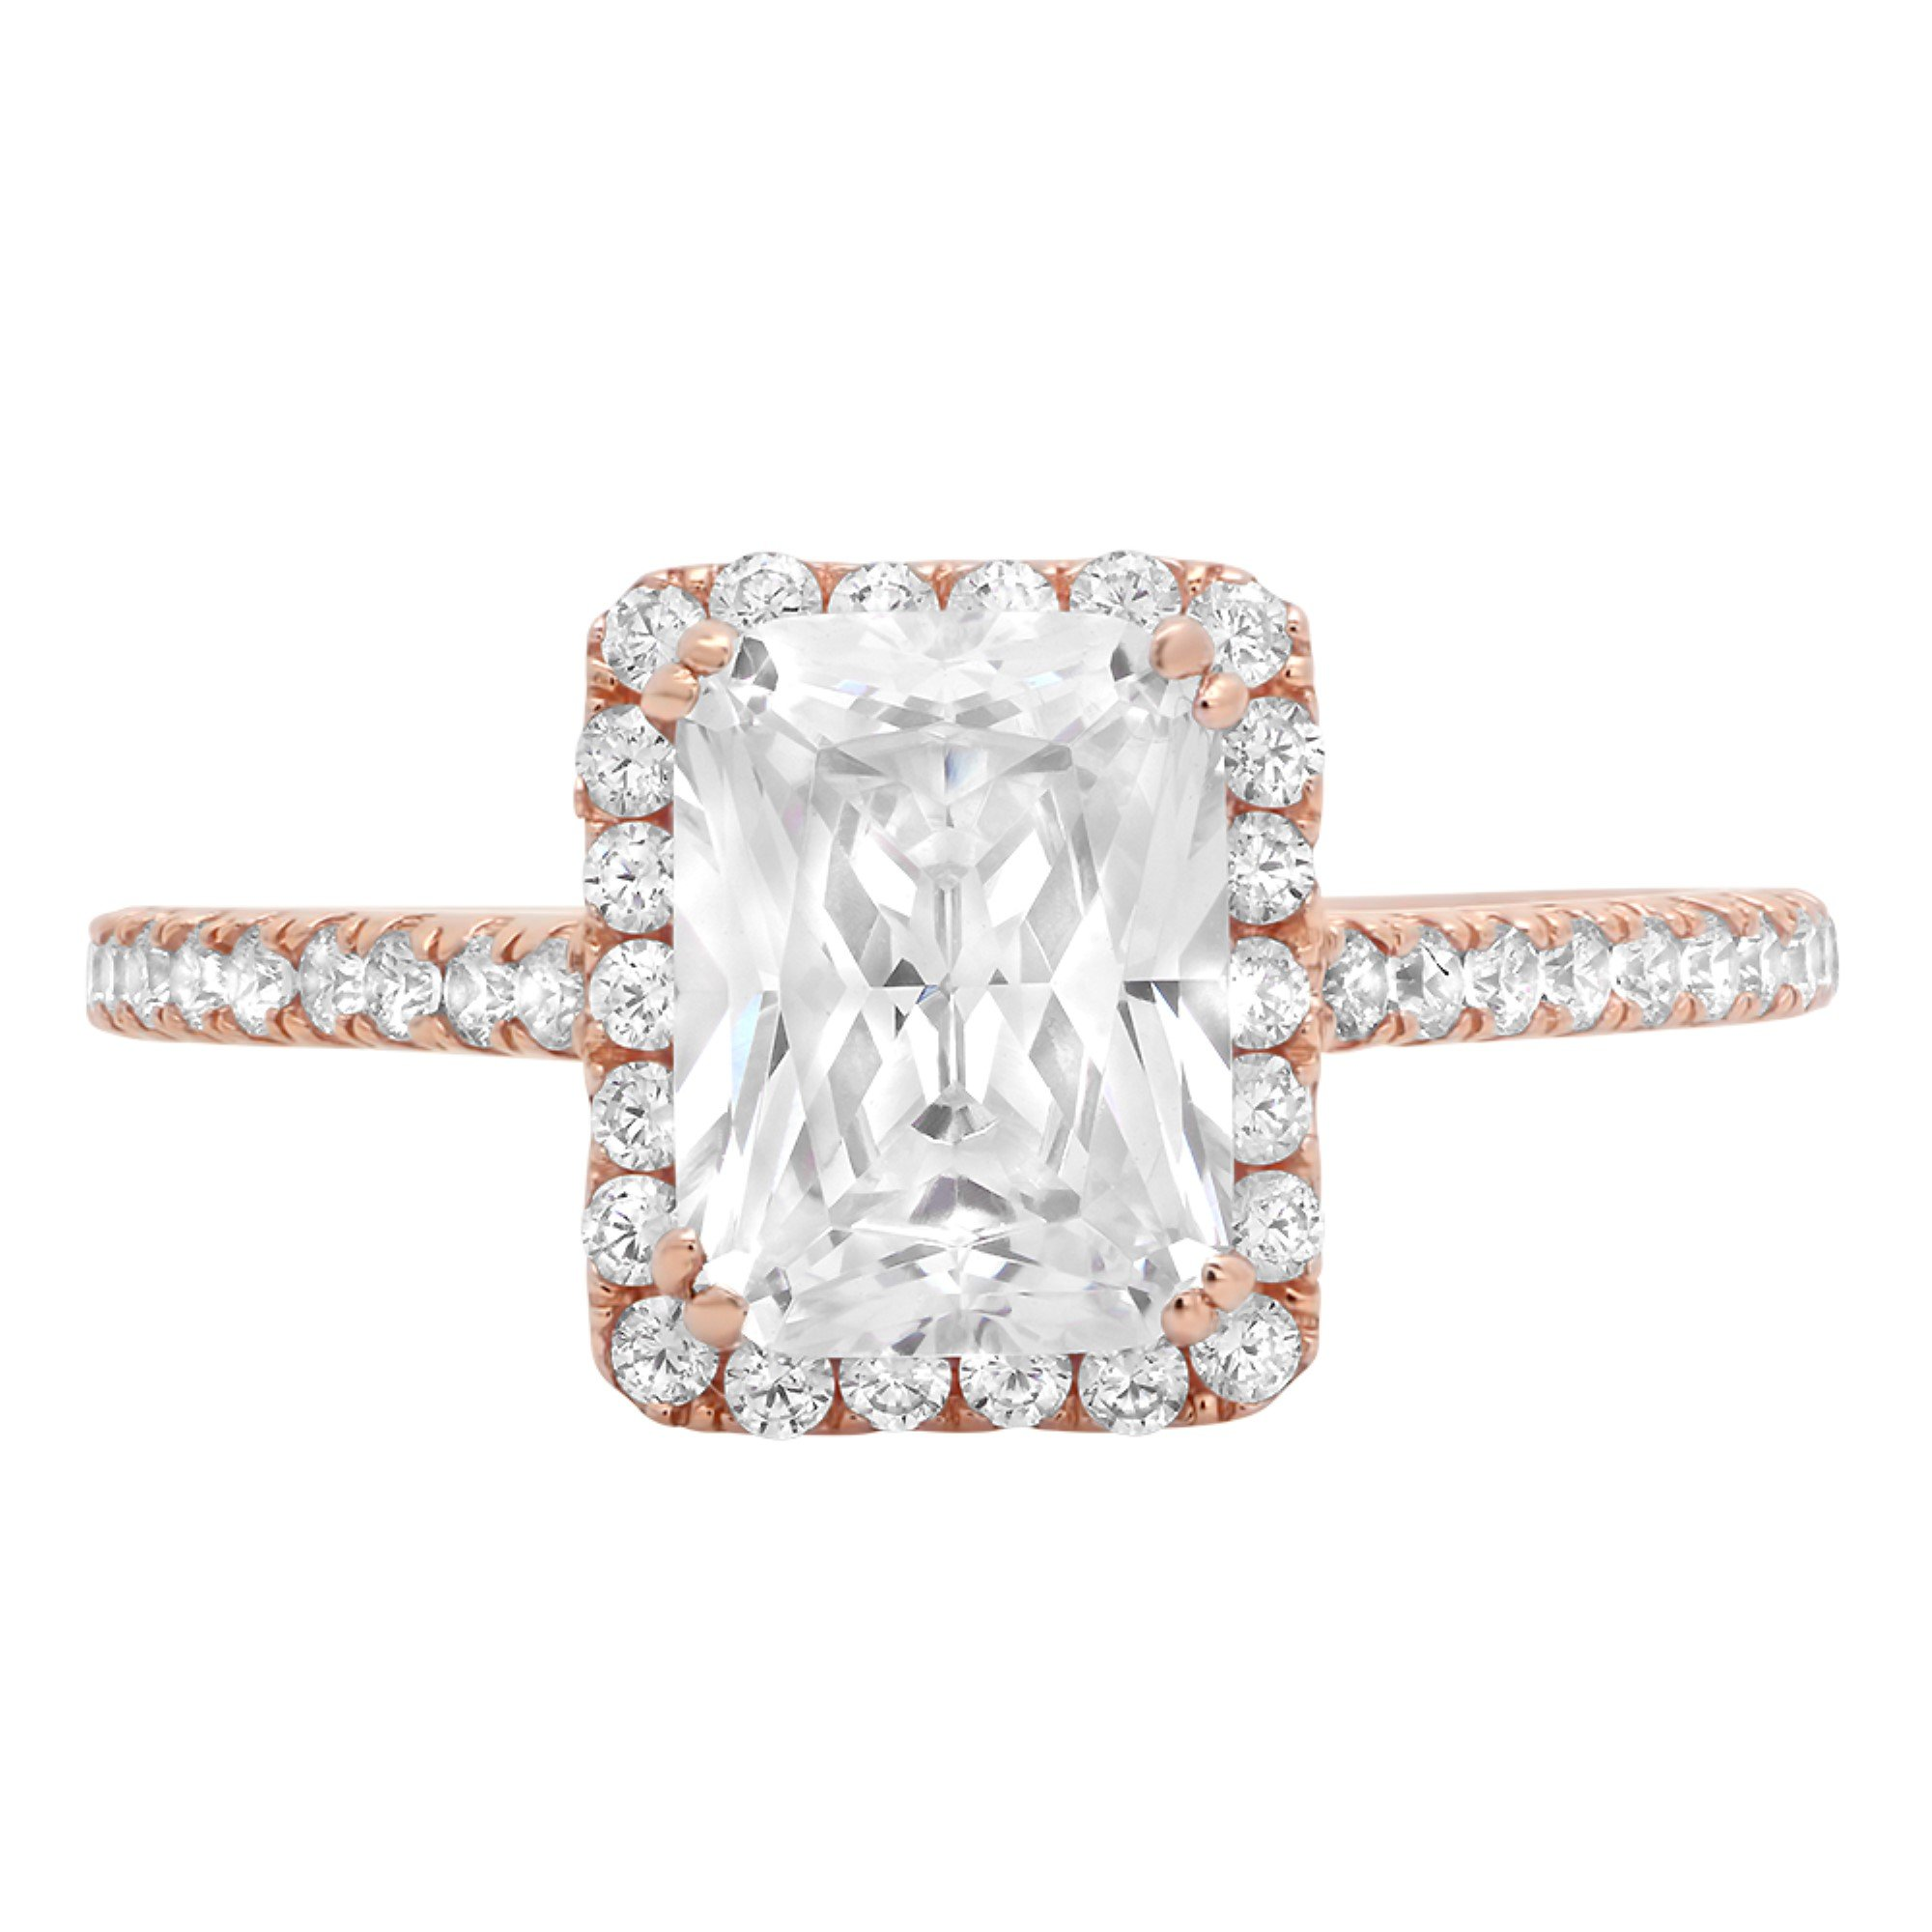 1.78ct Brilliant Emerald Cut Halo Wedding Anniversary Engagement Statement Bridal Ring 14k Rose Gold, 7